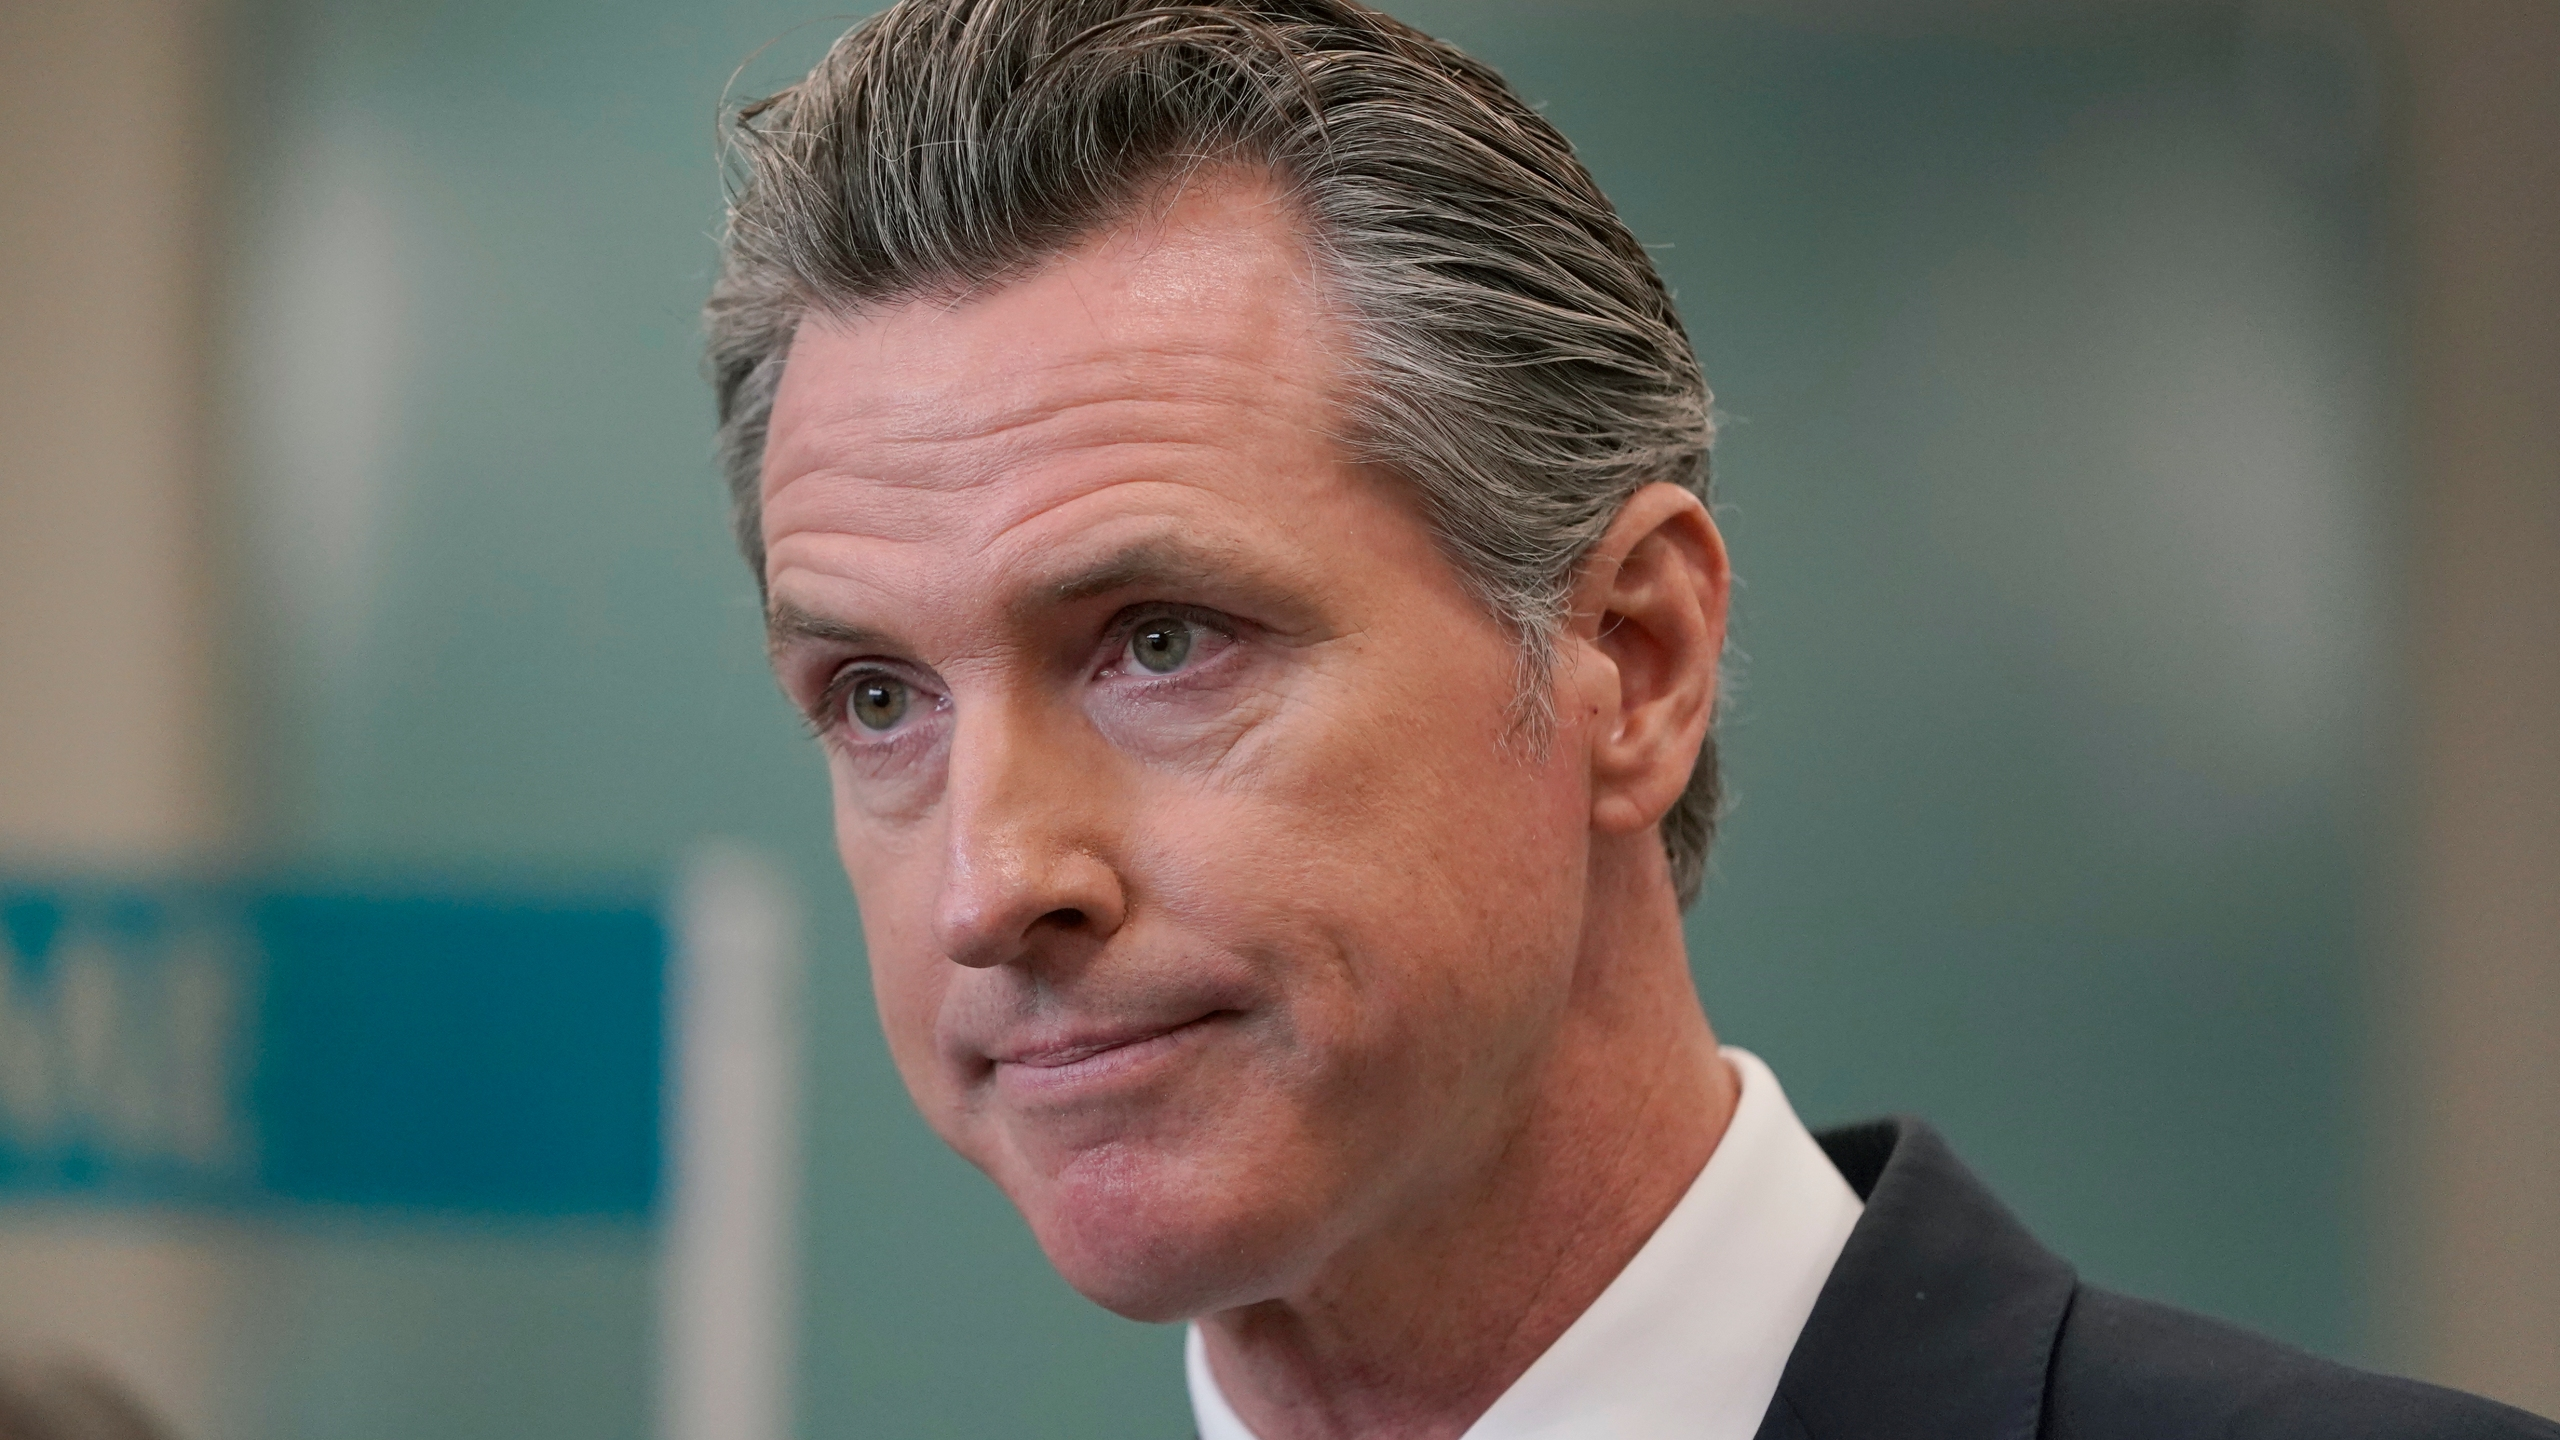 In this July 26, 2021 file photo Gov. Gavin Newsom speaks at a news conference in Oakland, Calif. California could witness a stunning turnabout if voters dump Newsom and elects a Republican to fill his job in a the September recall election. (AP Photo/Jeff Chiu, File)